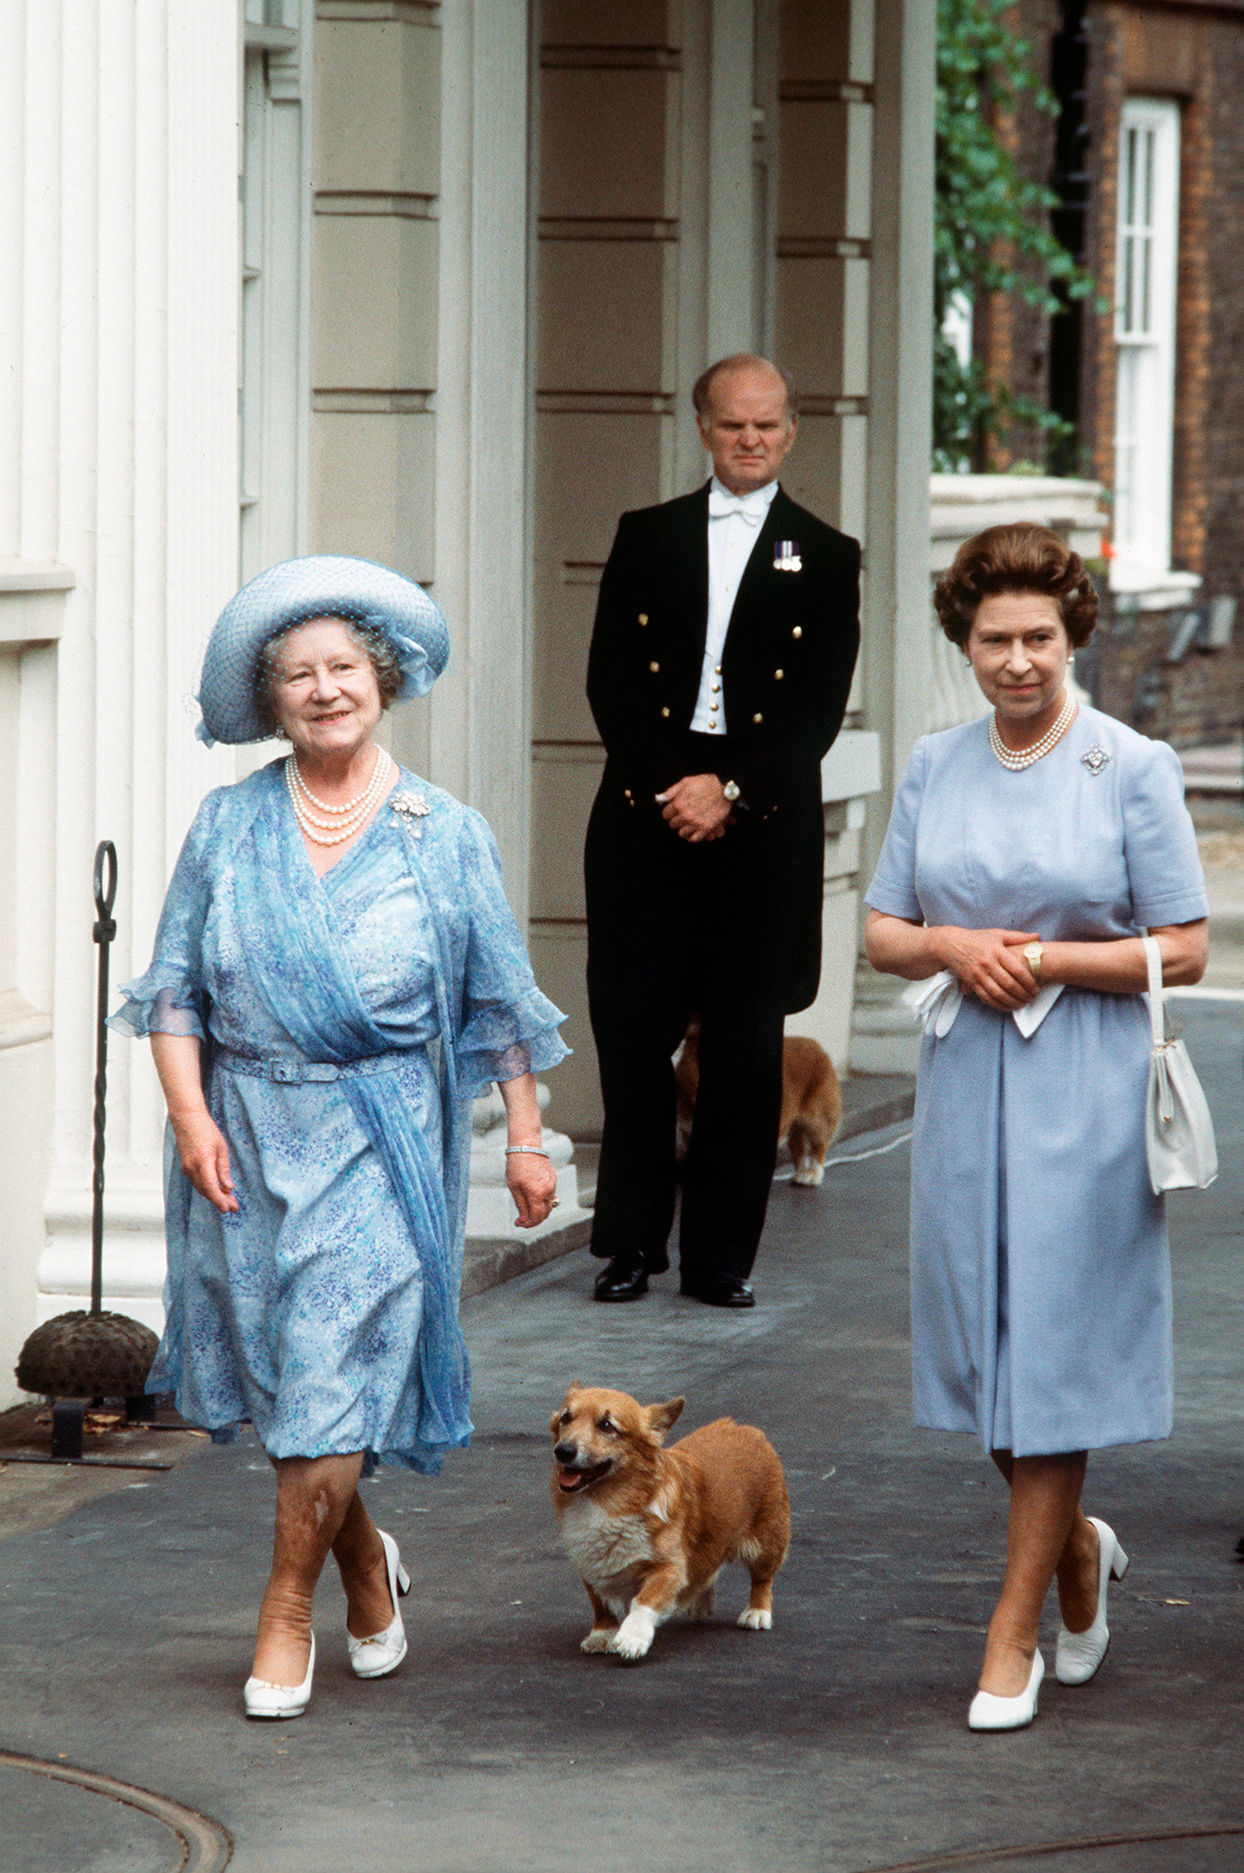 Queen Elizabeth and mother stroll down the street with an unleashed corgi